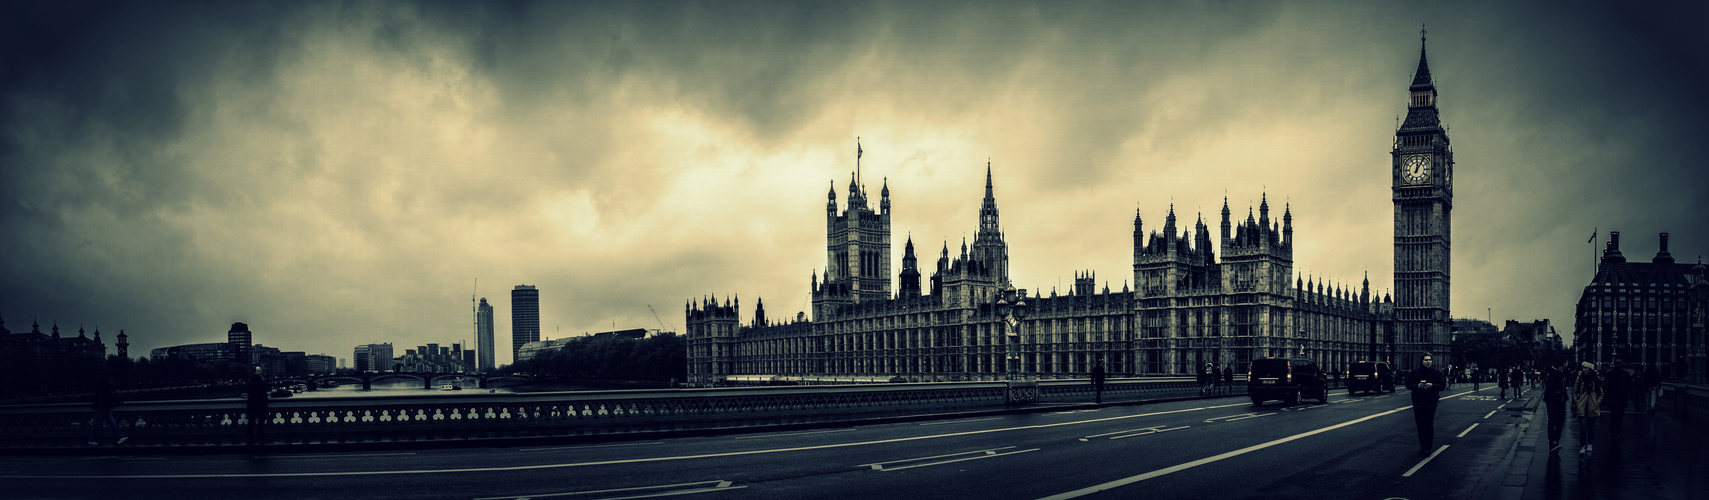 the houses of parliament 2